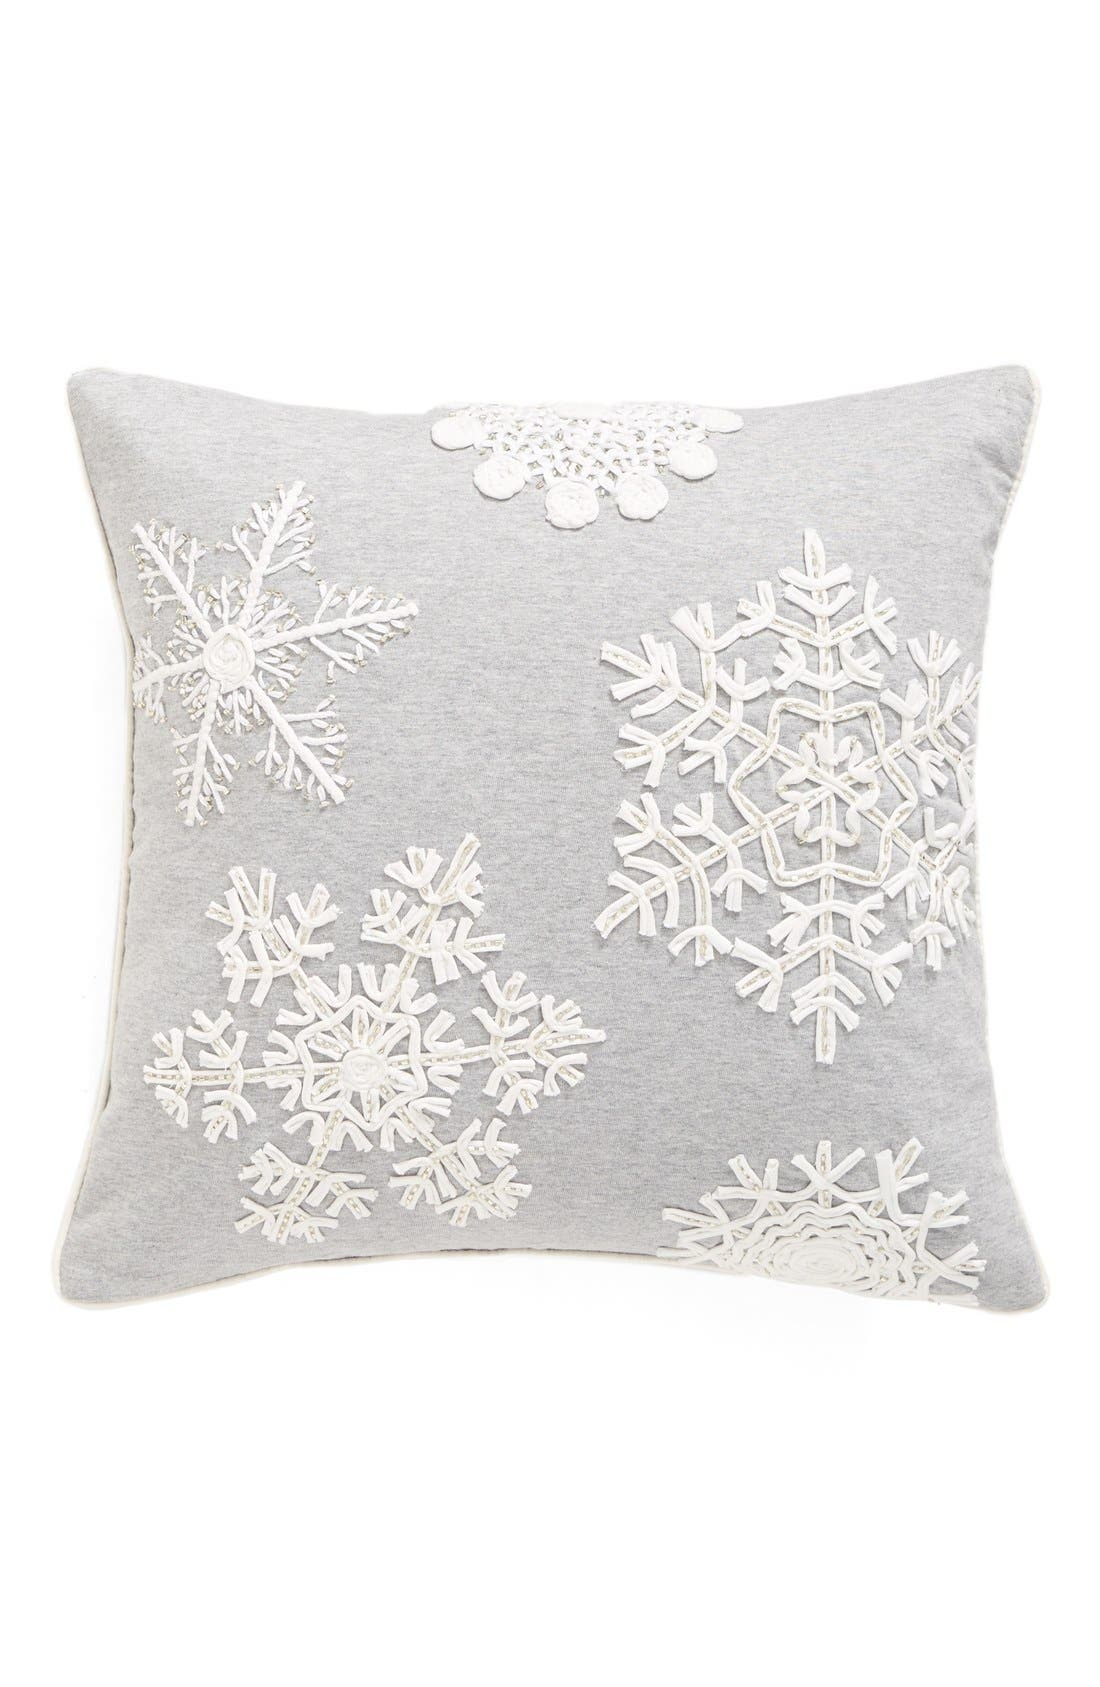 Snowflake Jersey Accent Pillow,                         Main,                         color, 020